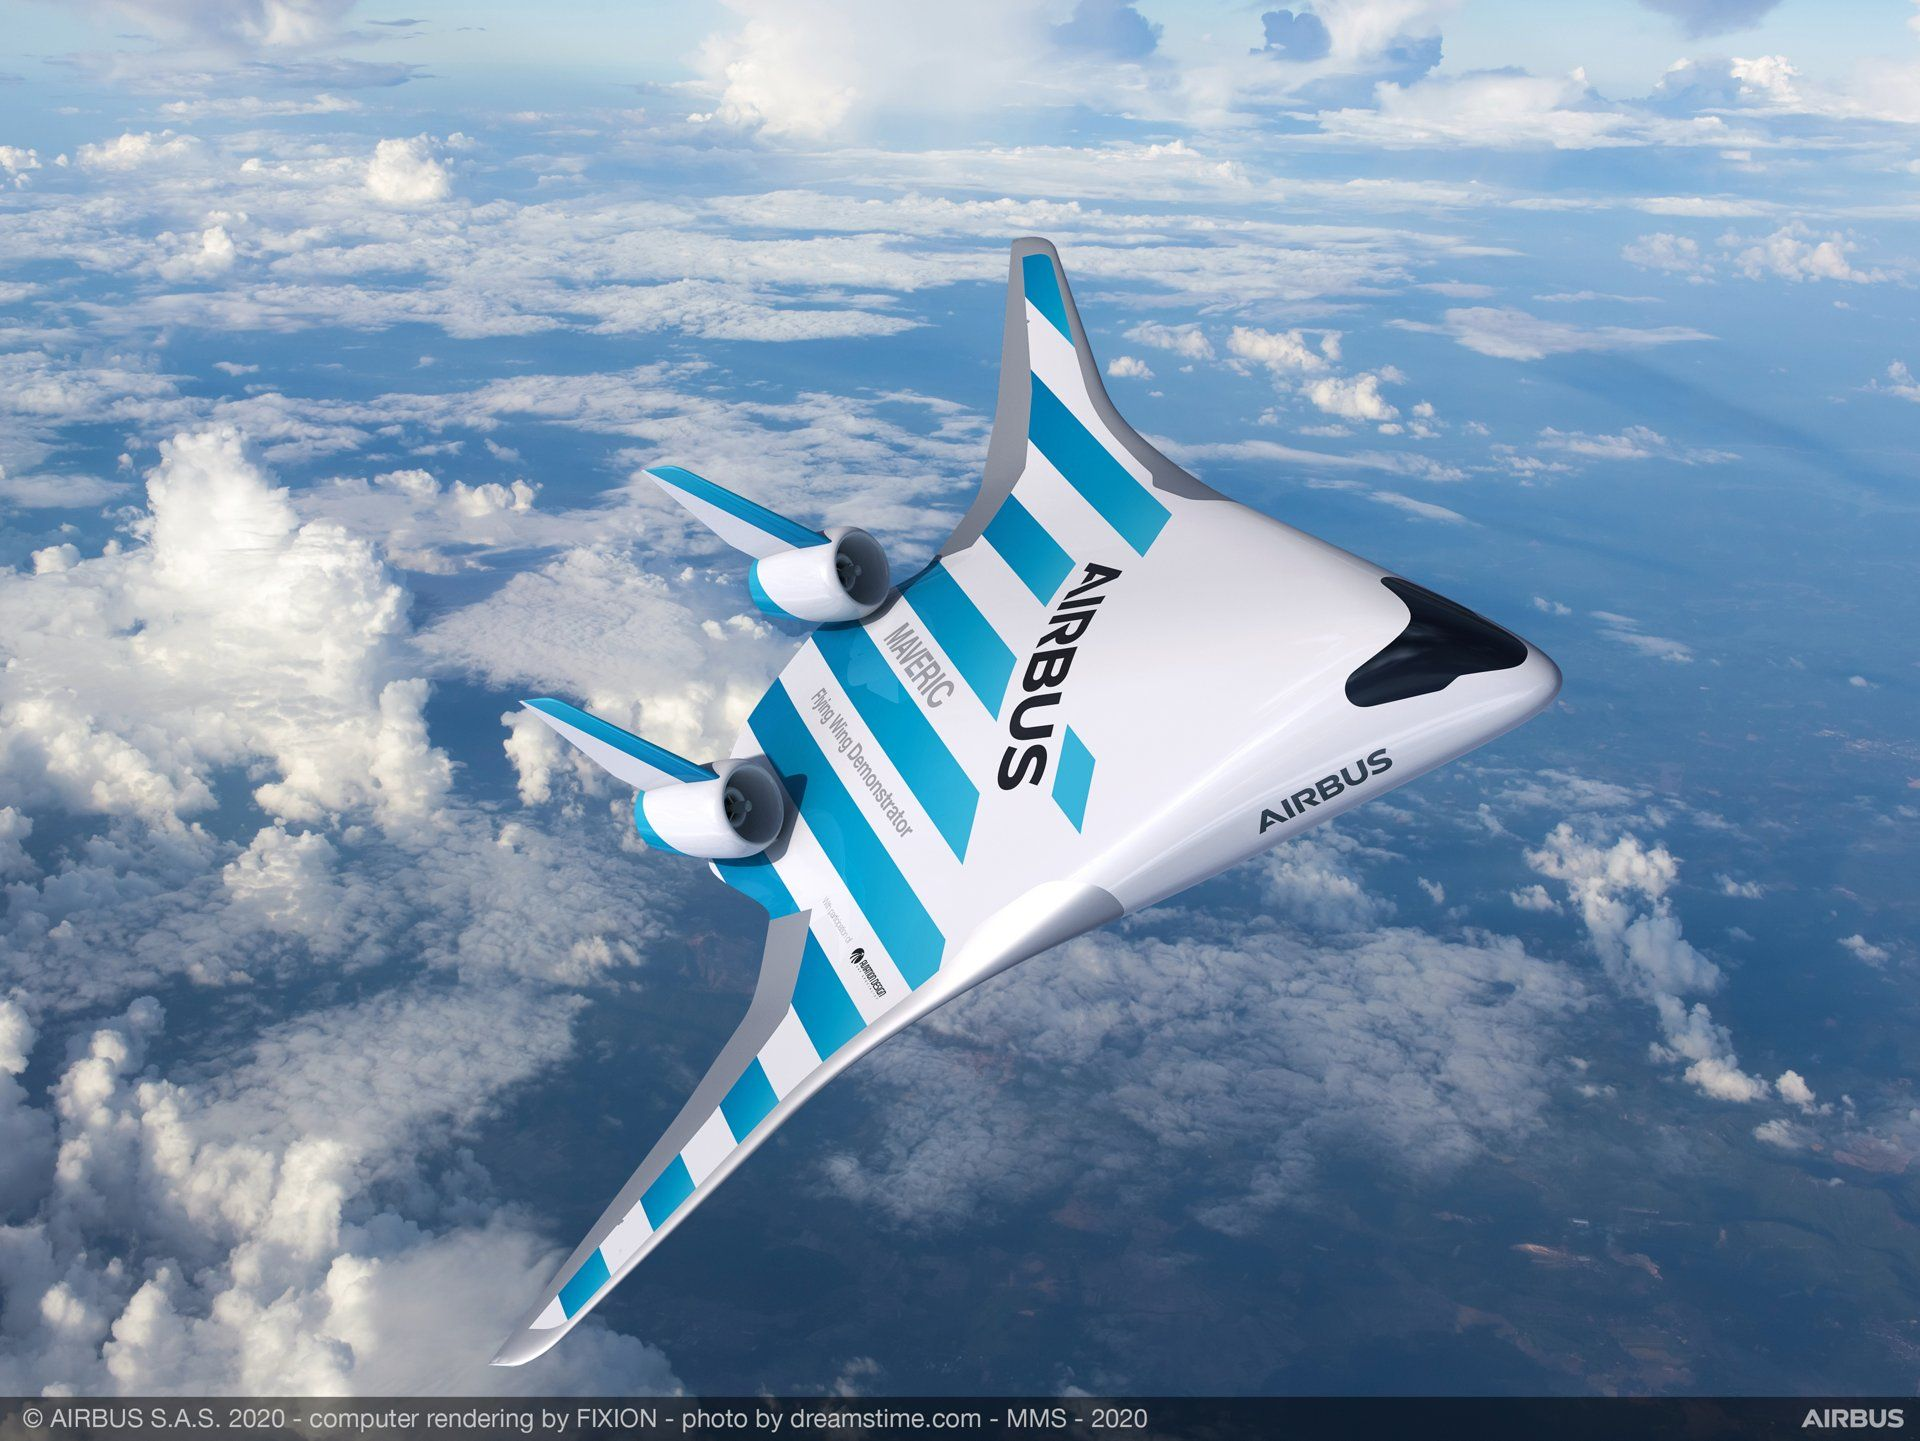 Will We One Day Fly in This 'Blended Wing' Airplane? Airbus Built a Prototype To Find Out.